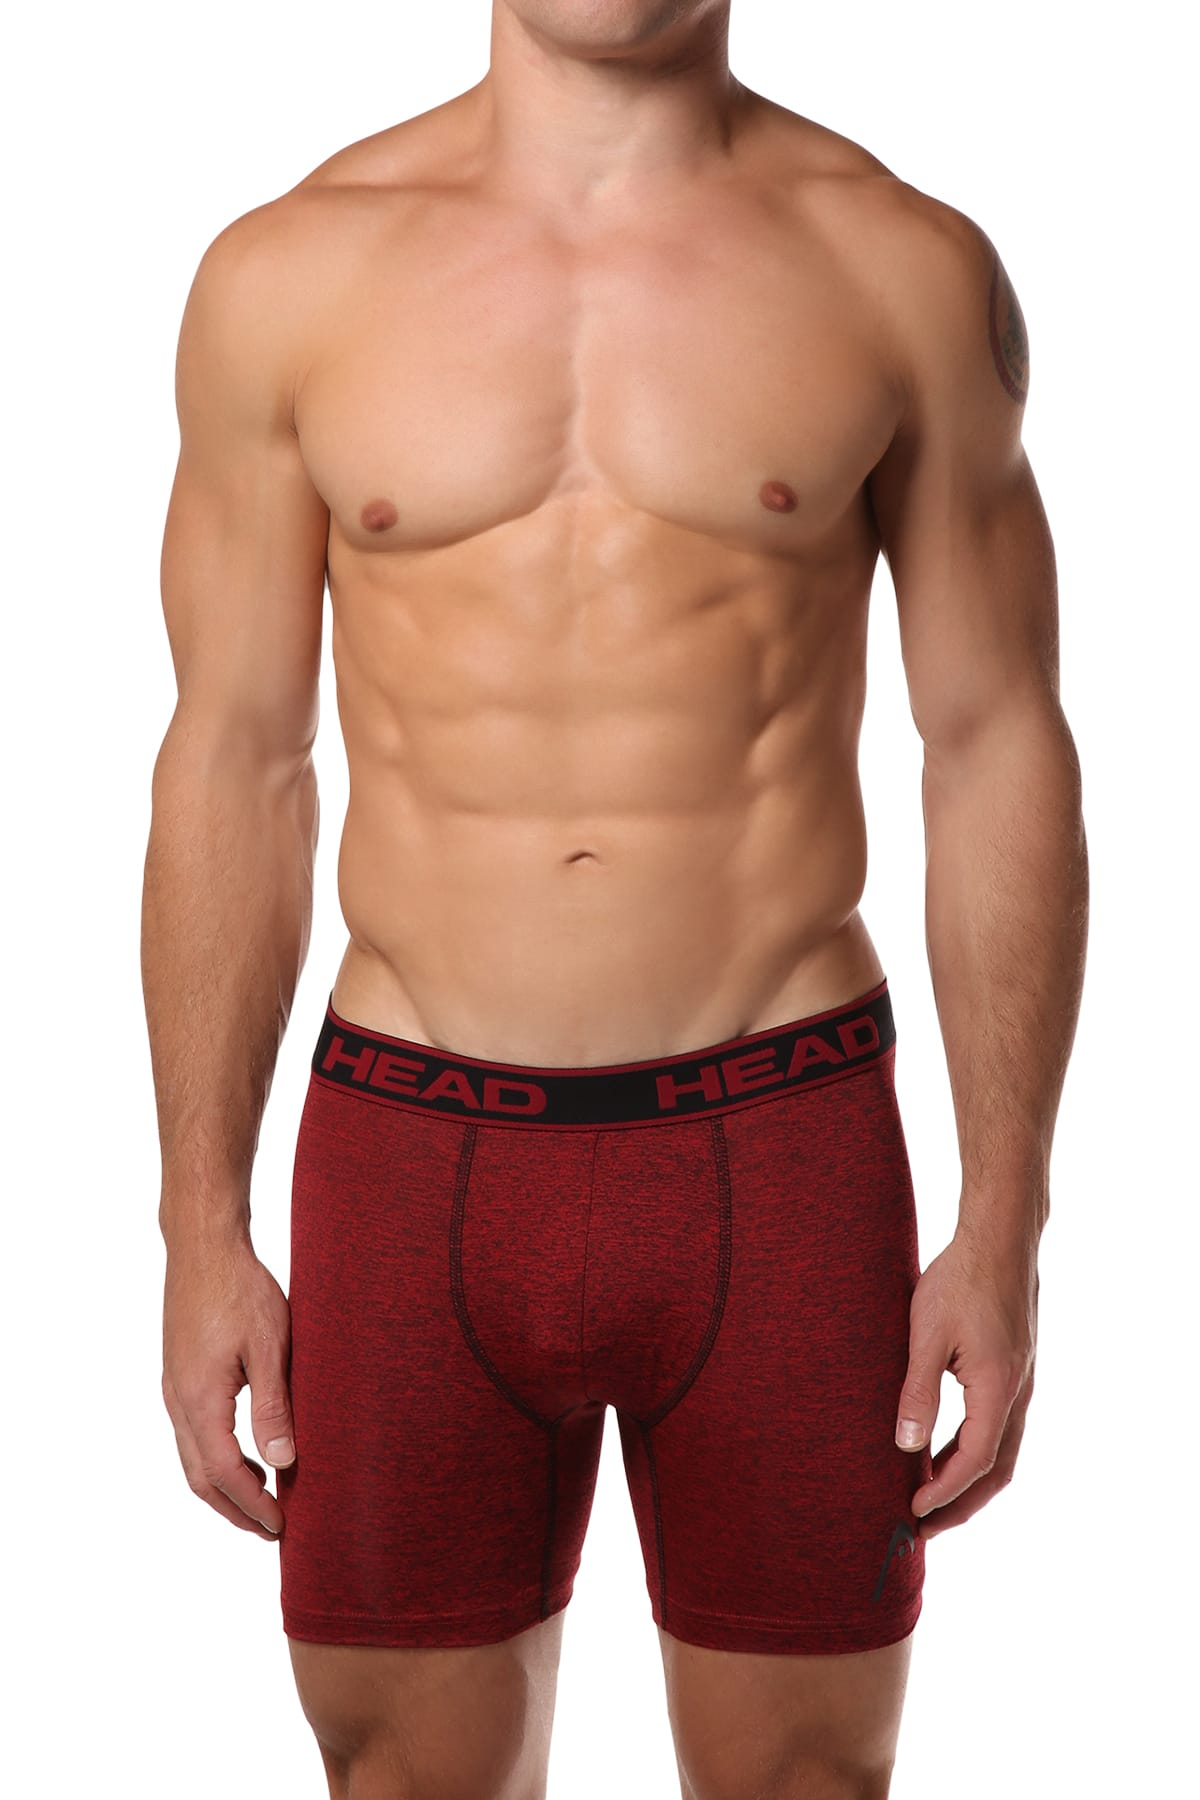 Head Red Marl Boxer Brief